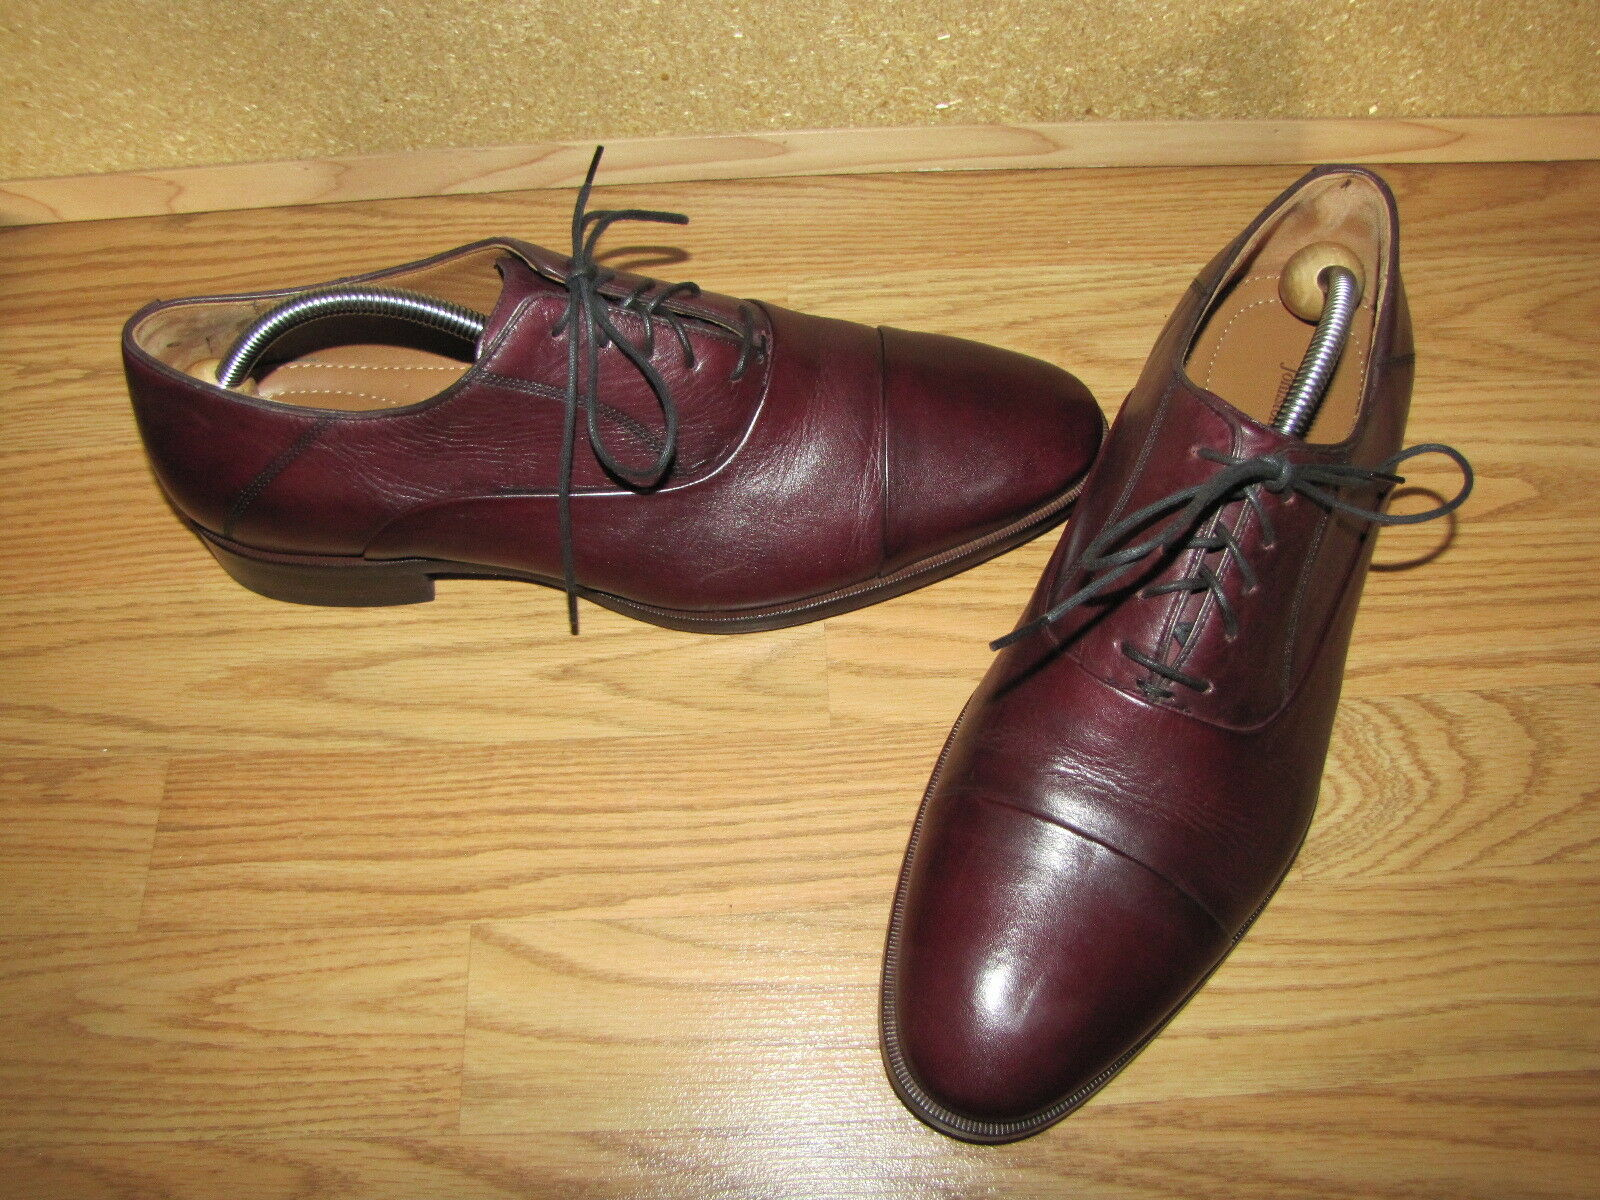 Johnston & Murphy 'Aristocrft' Burgundy Captoe Oxfords - 11M Euro. 45 EUC